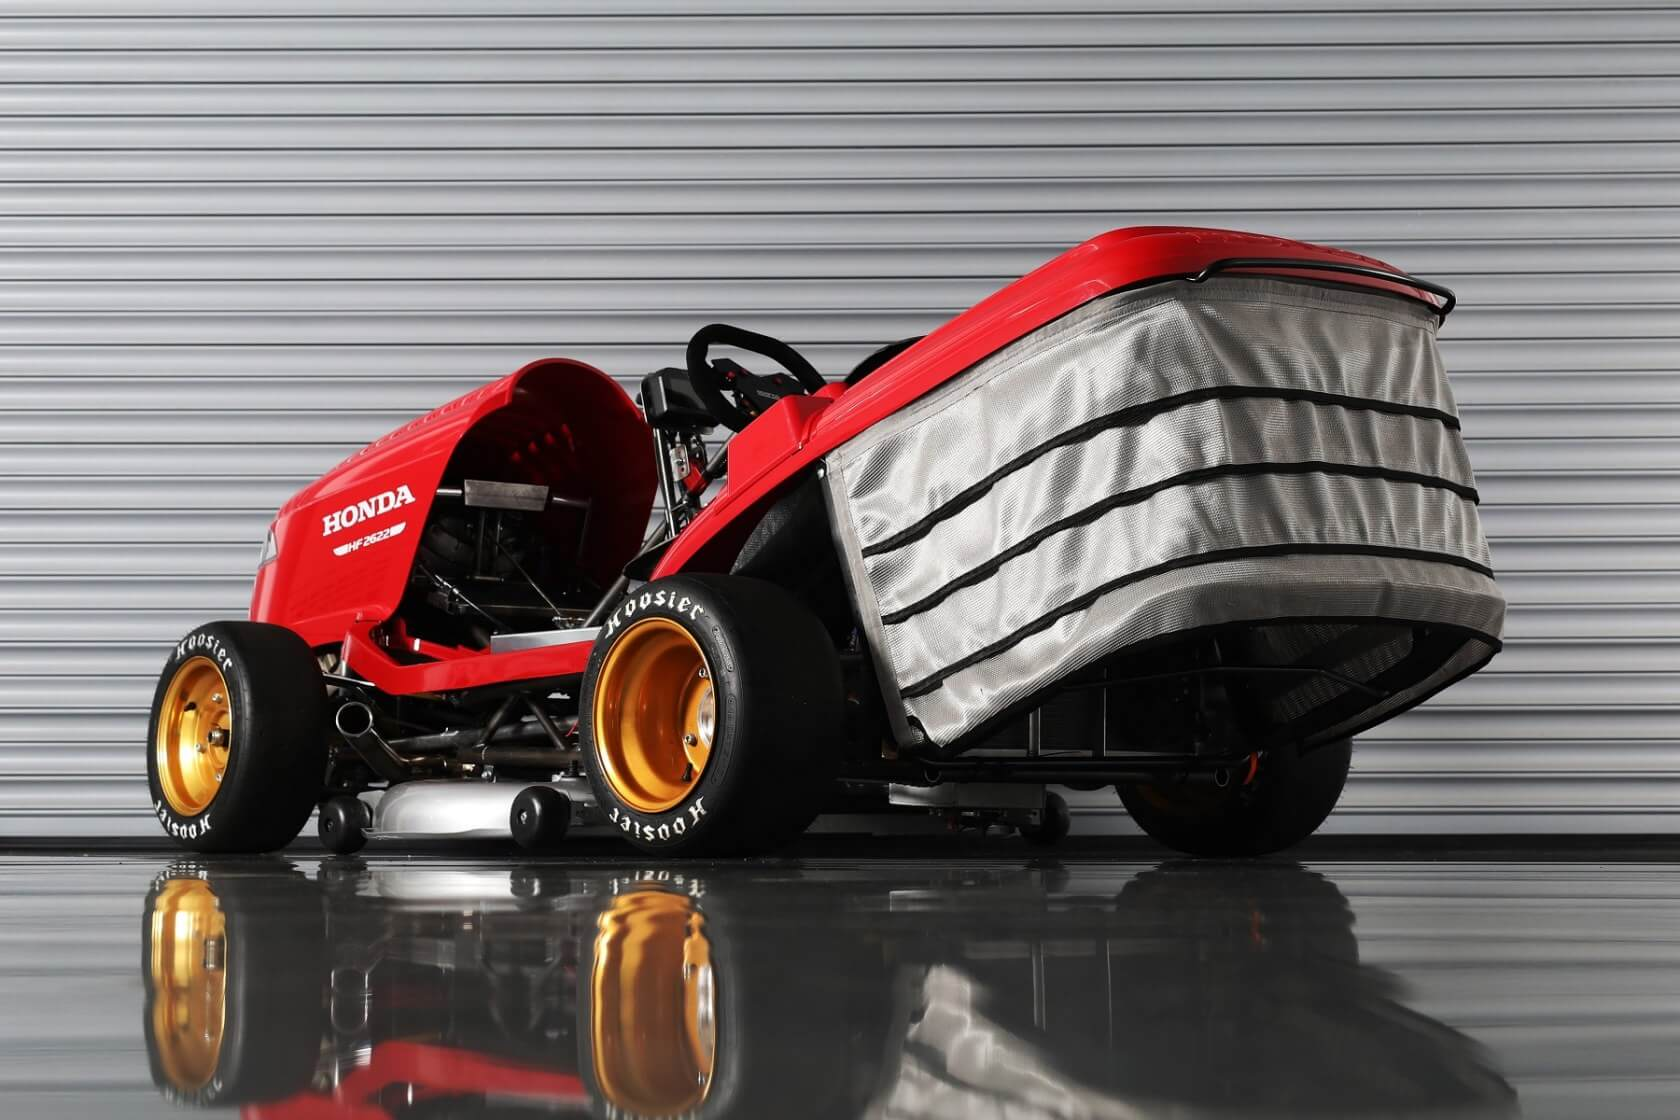 Honda's Mean Mower V2 aims for 150 miles per hour